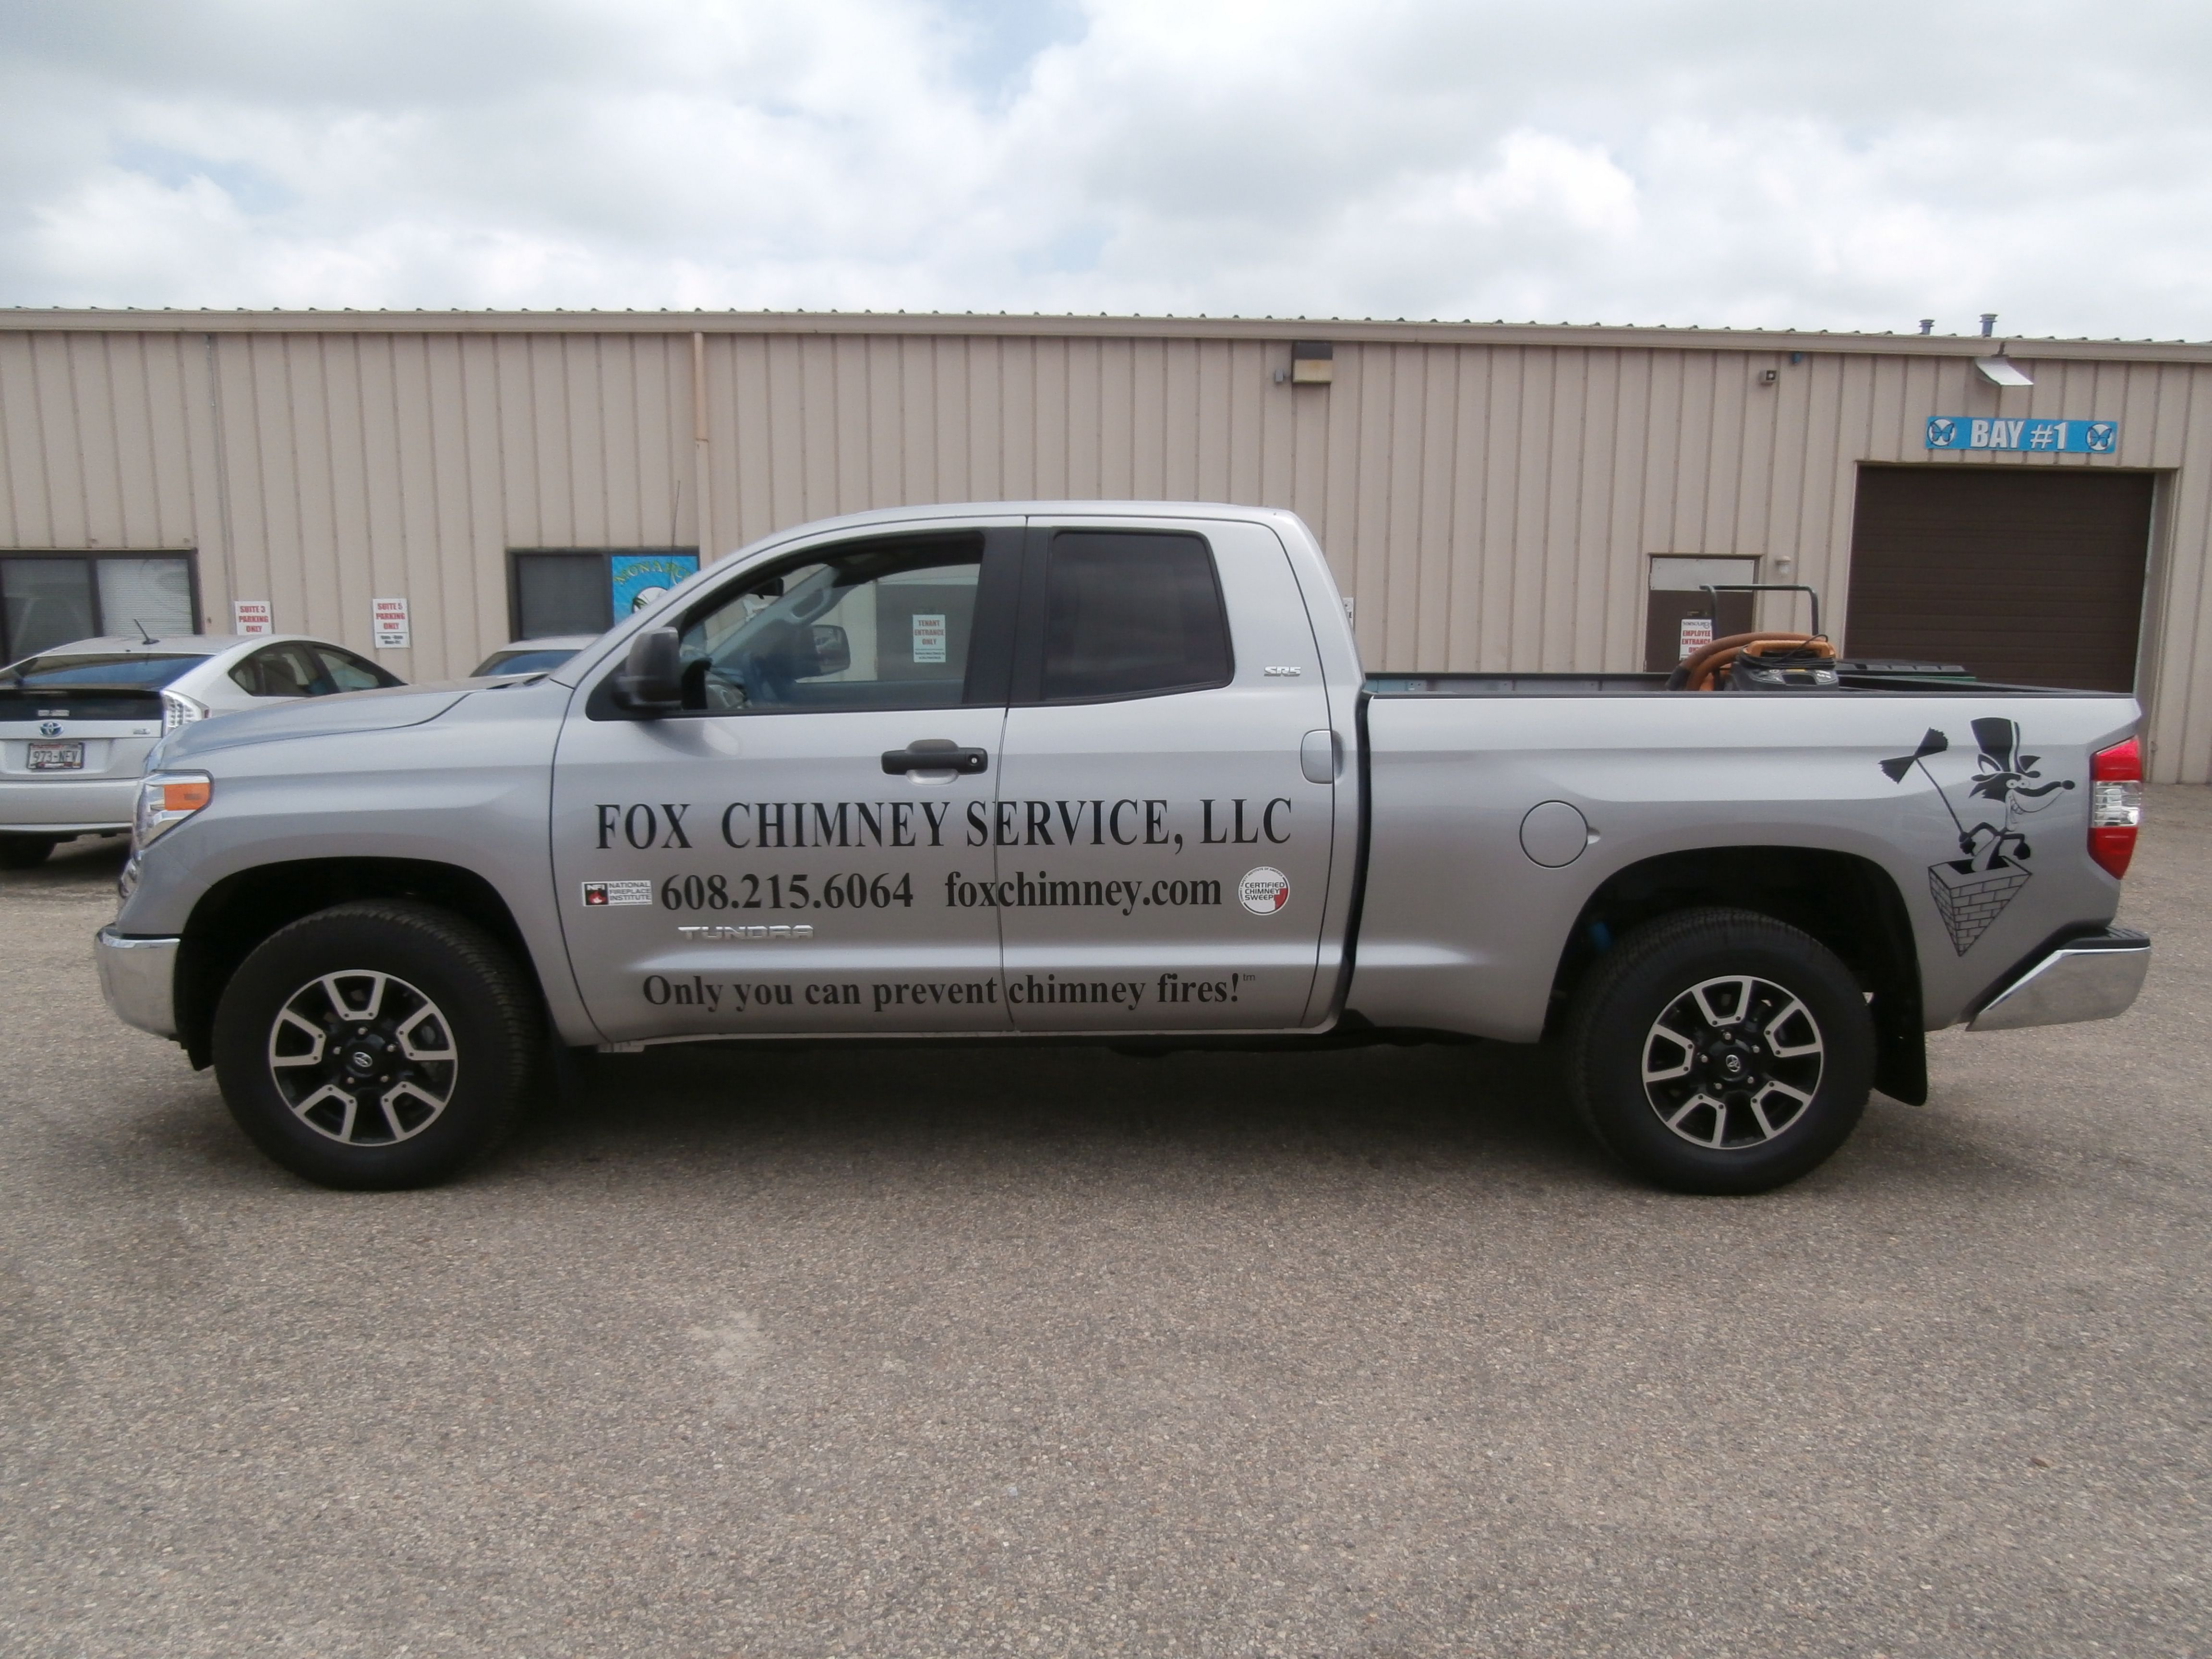 Fox Chimney Truck Graphics Done By Monarch Media Designs In